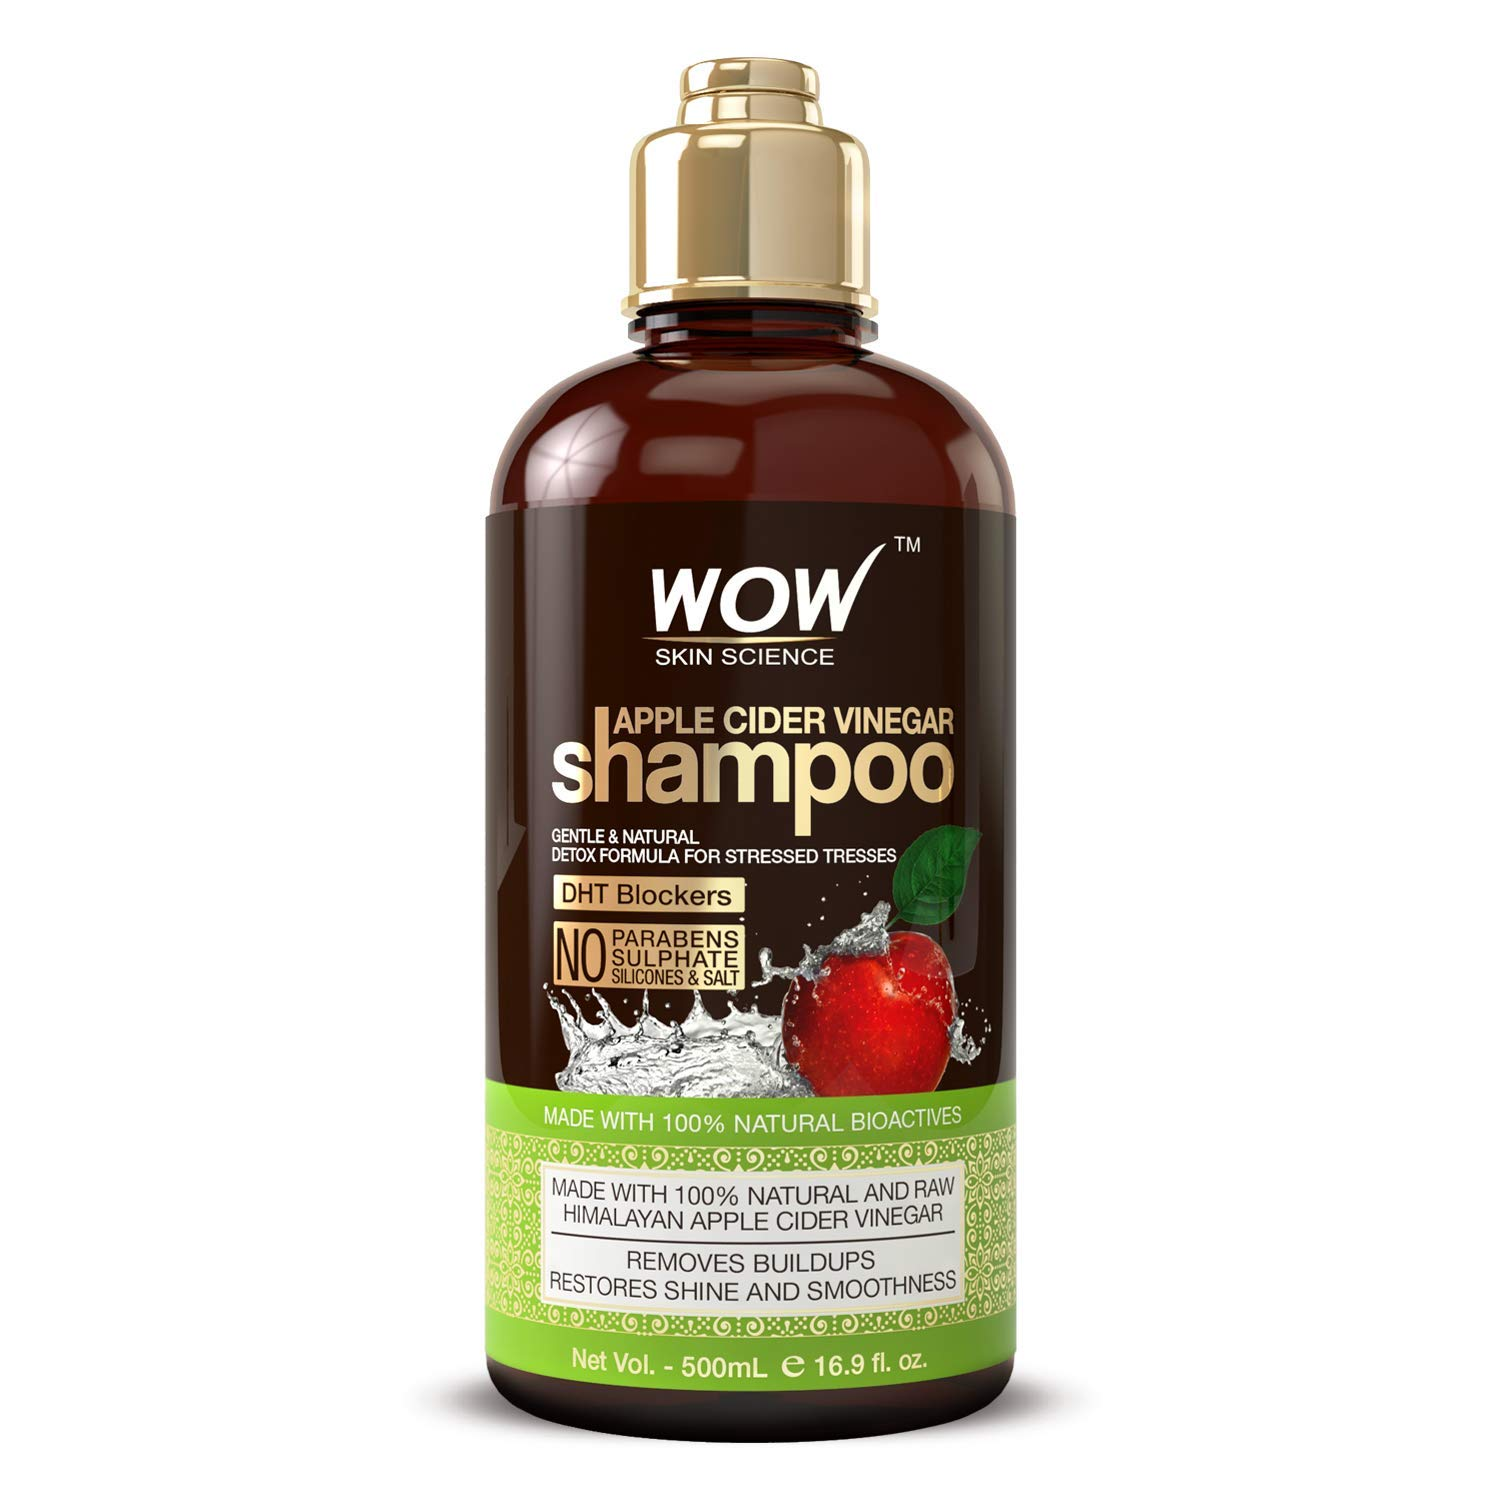 WOW Apple Cider Vinegar Shampoo - Reduce Dandruff, Frizz, Split Ends- DHT Blockers For Hair Loss - Clean Scalp & Boost Gloss, Shine - Paraben, Sulfate Free - All Hair Types, Adults & Children - 500 mL by BUYWOW